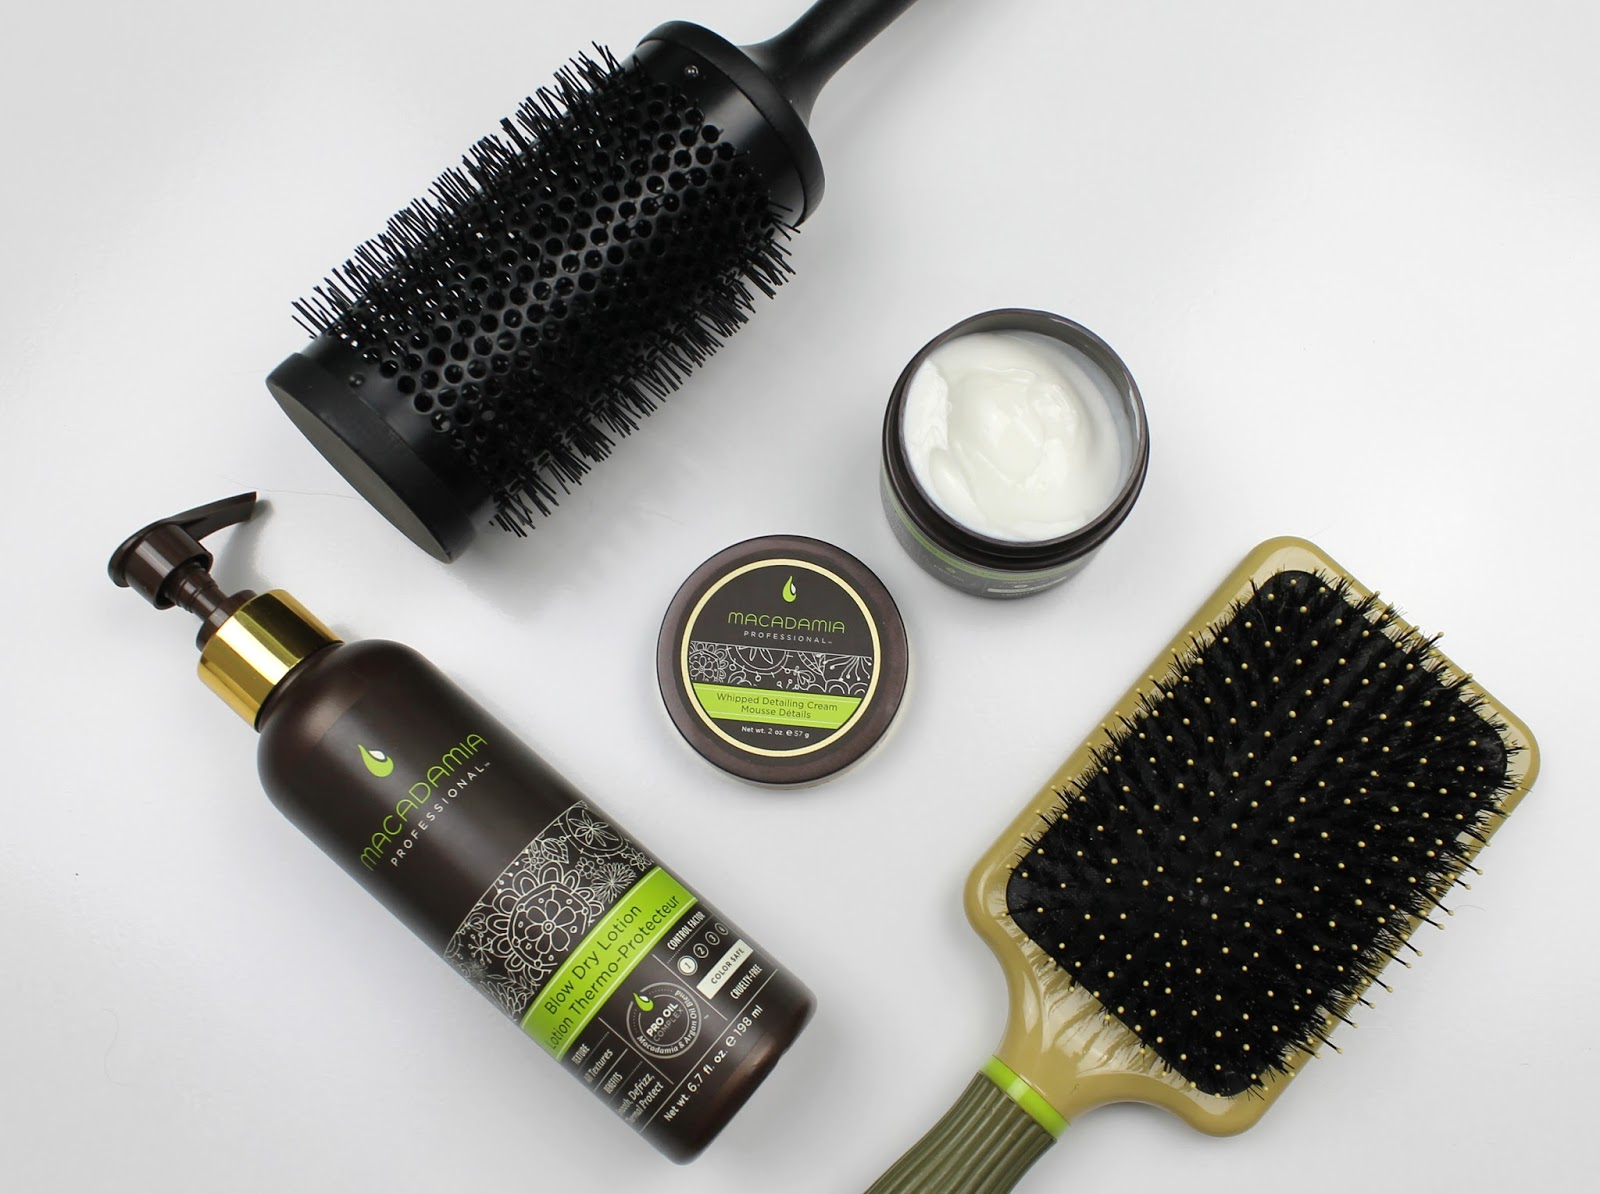 Review: Macadamia Professional Styling Products